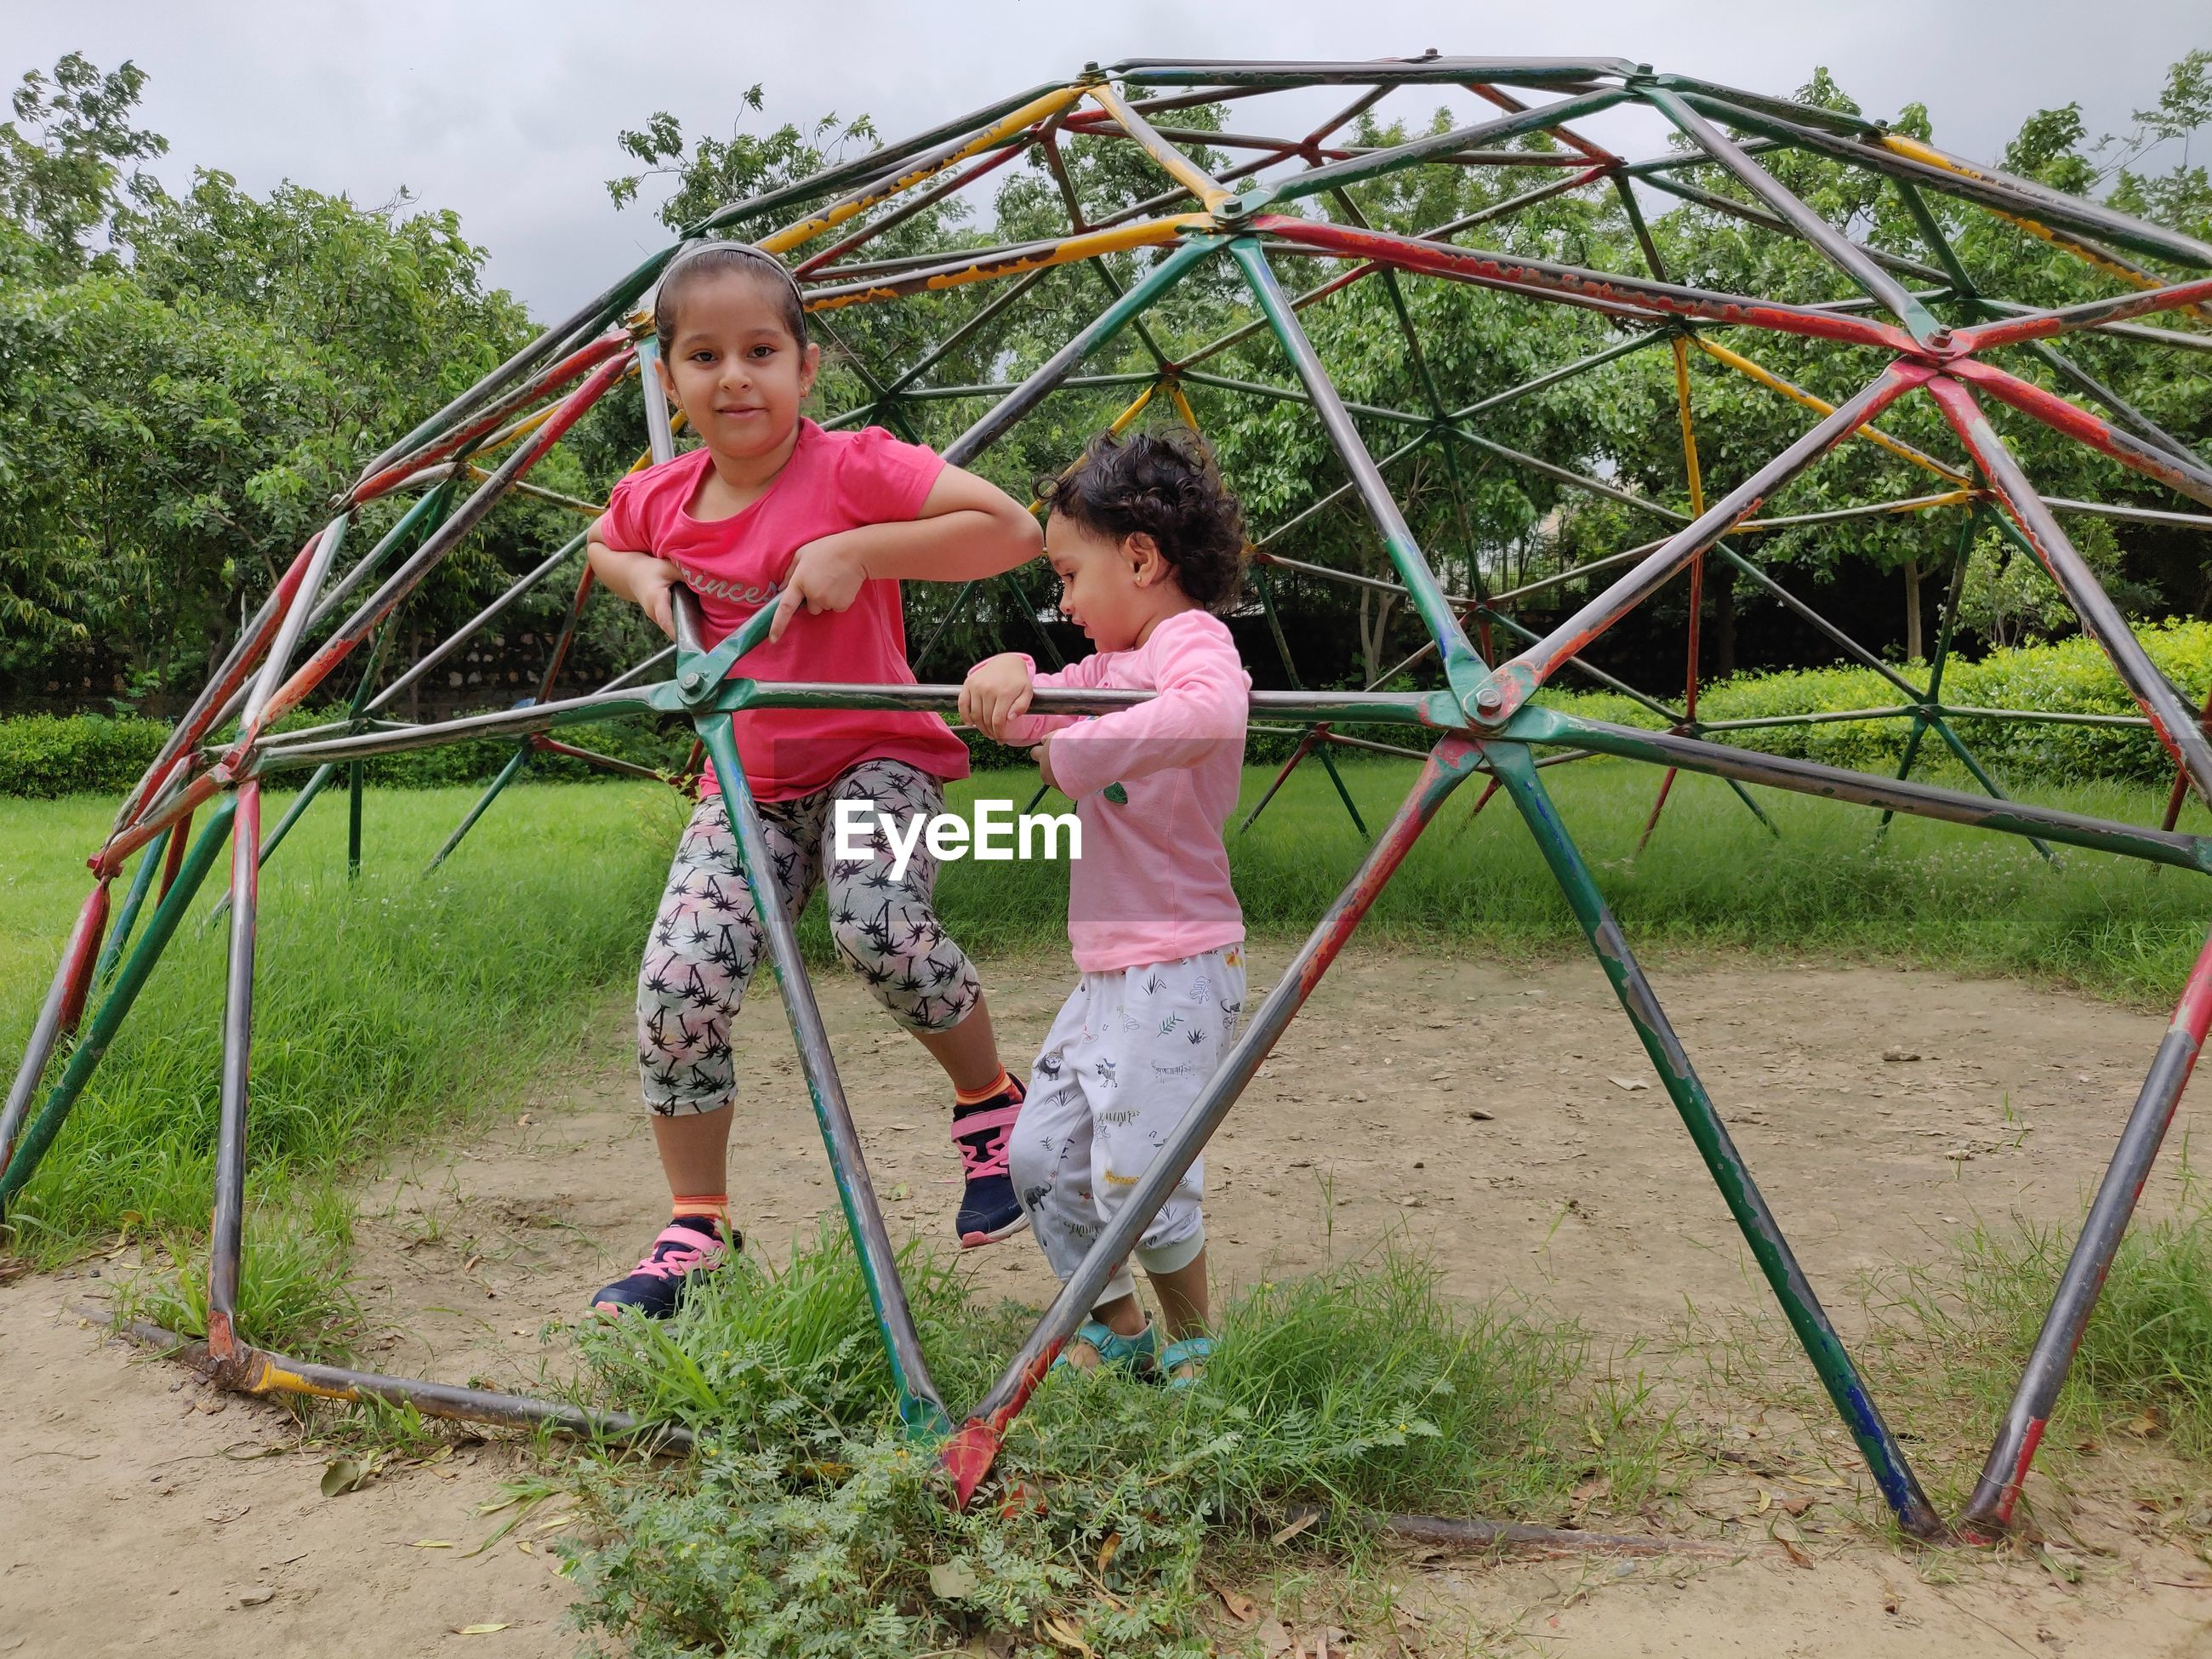 Children playing on jungle gym in playground